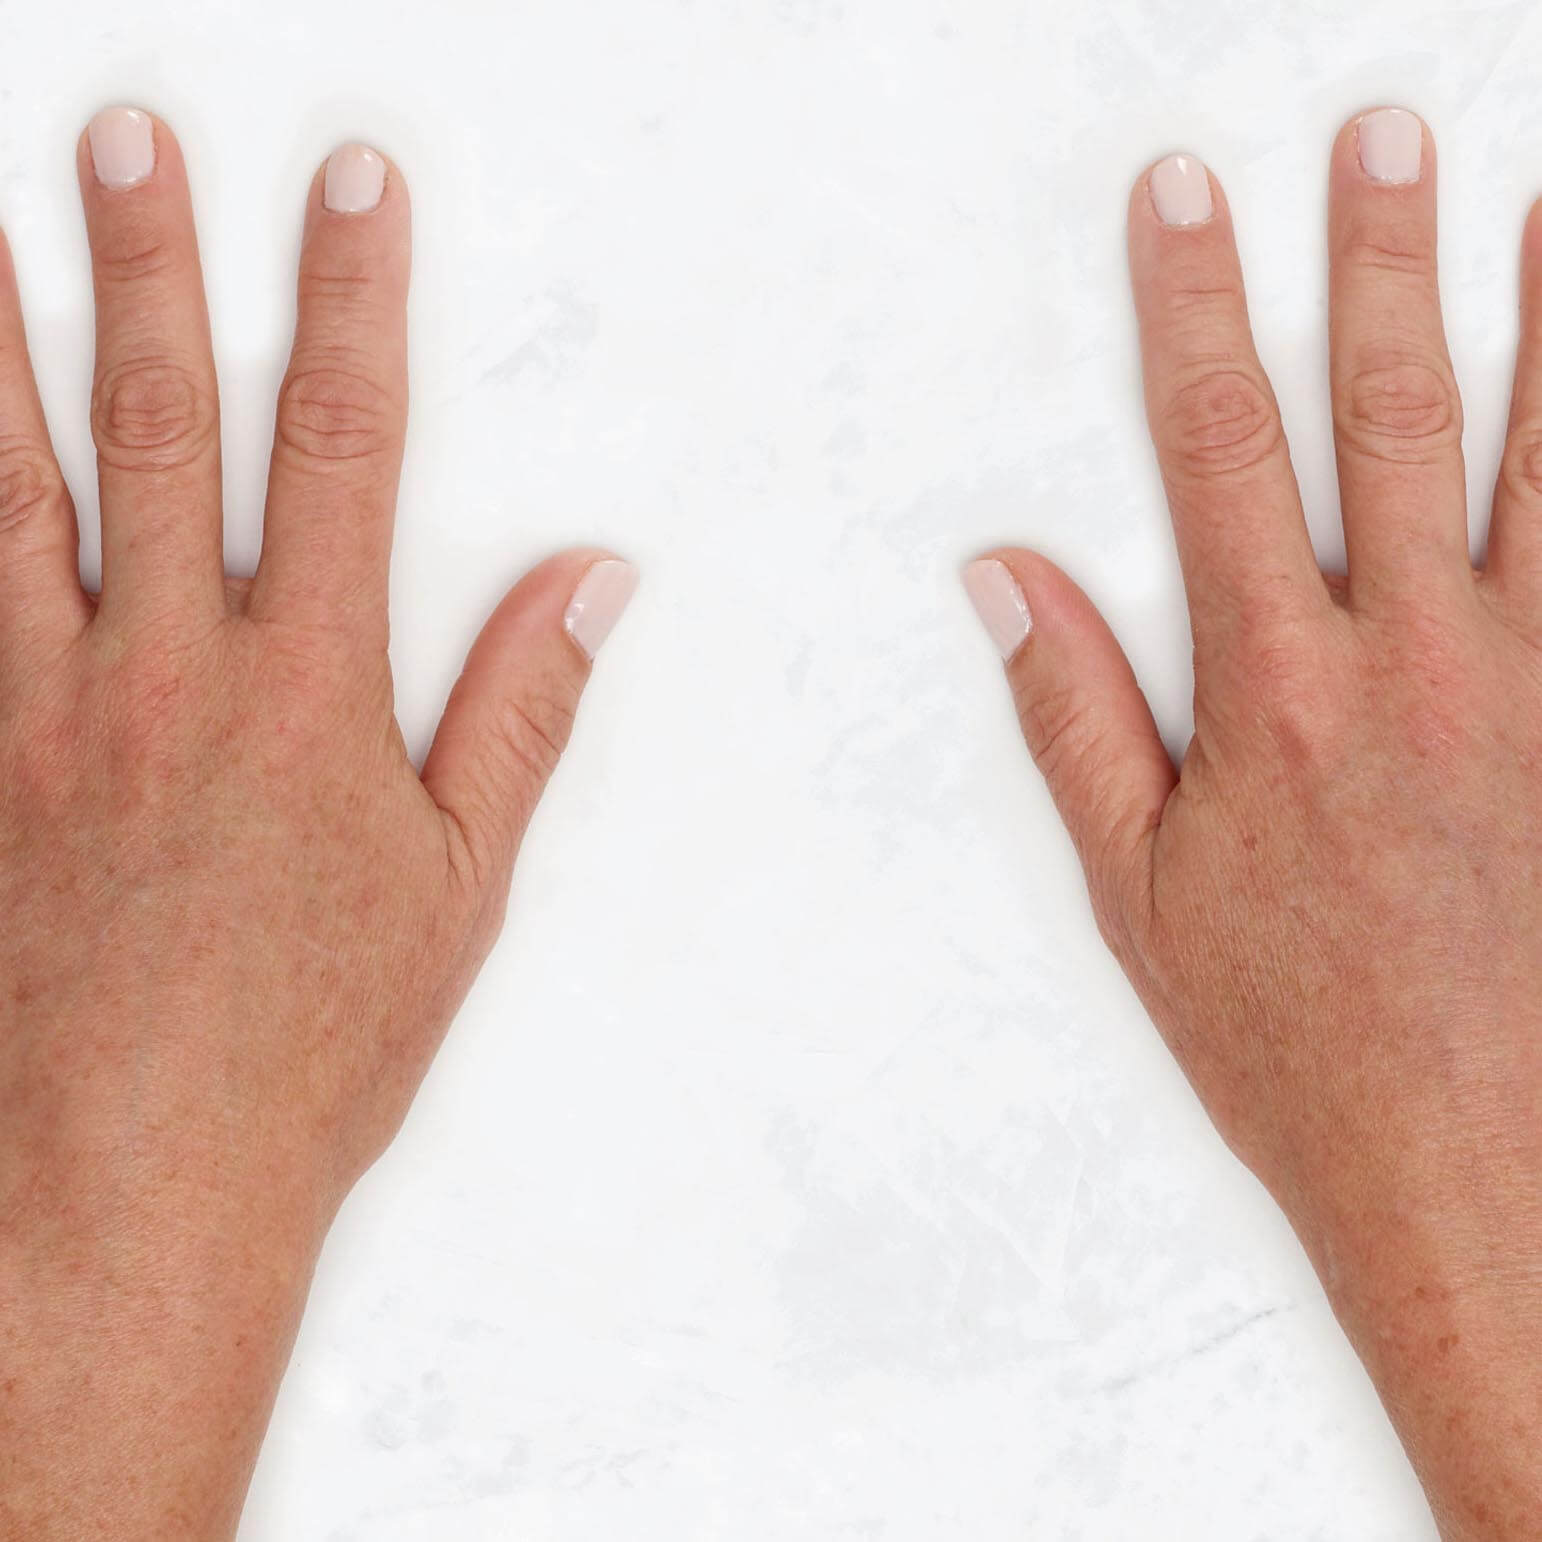 See Claire's clinical view before and after Restylane Lyft hand treatment